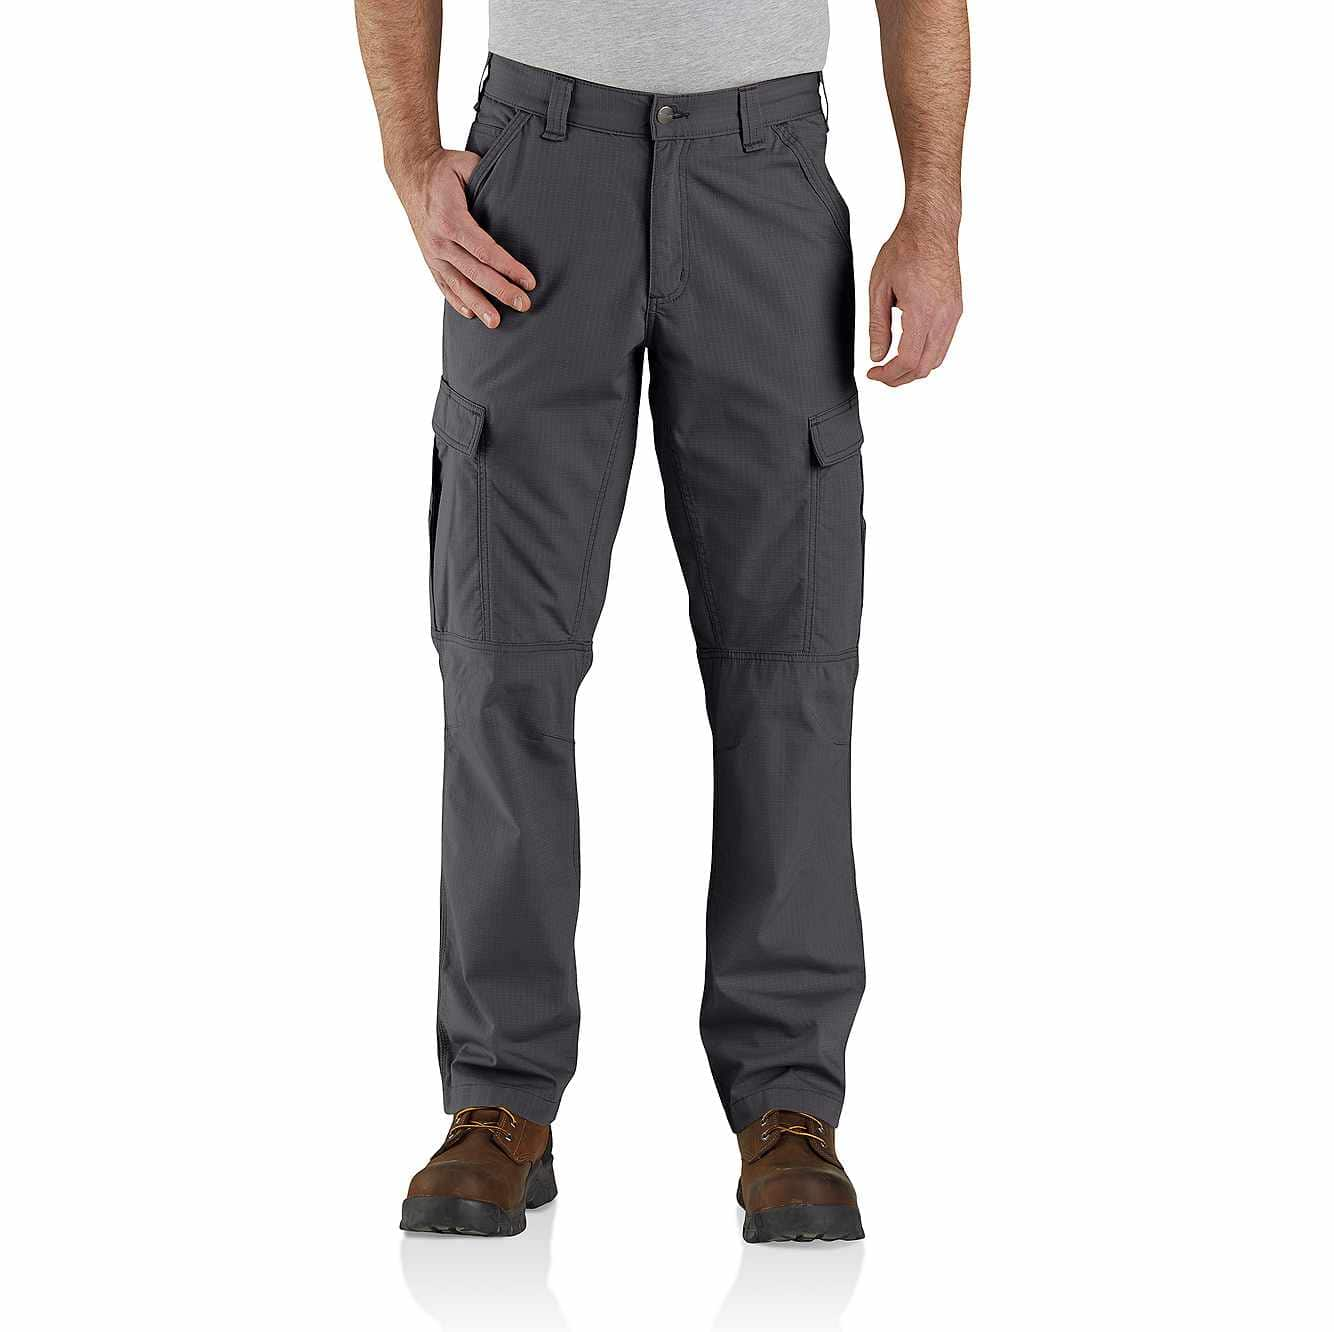 Picture of Force® Relaxed Fit Ripstop Cargo Pant in Shadow